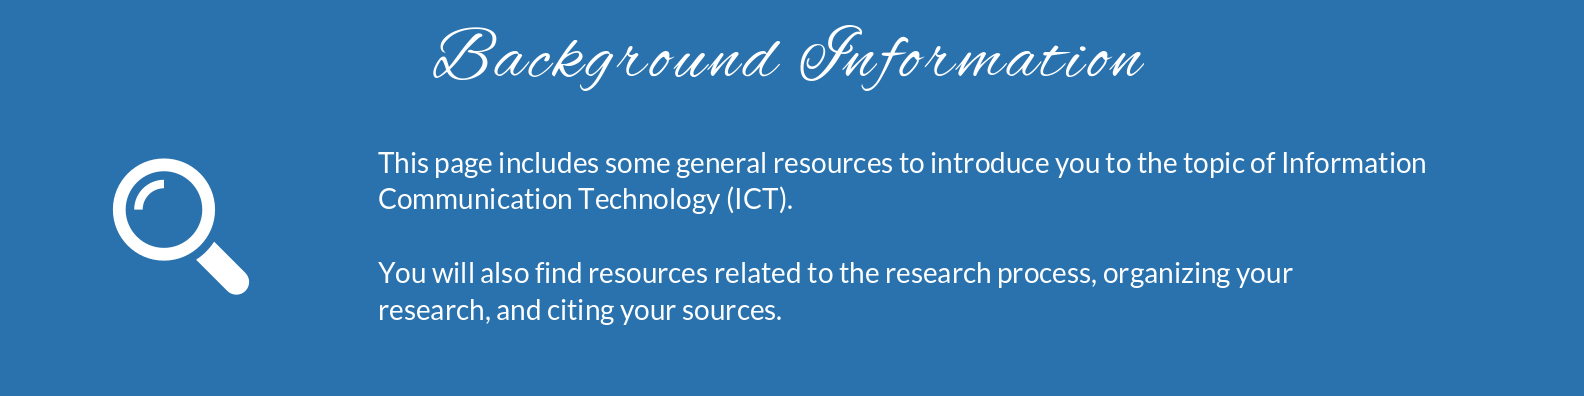 This page includes some general resources to introduce you to the topic of library science, plus some books that provide an overview of a few different library career paths. Also included on this page are some resources related to the research process, organizing your research, and citing your sources.